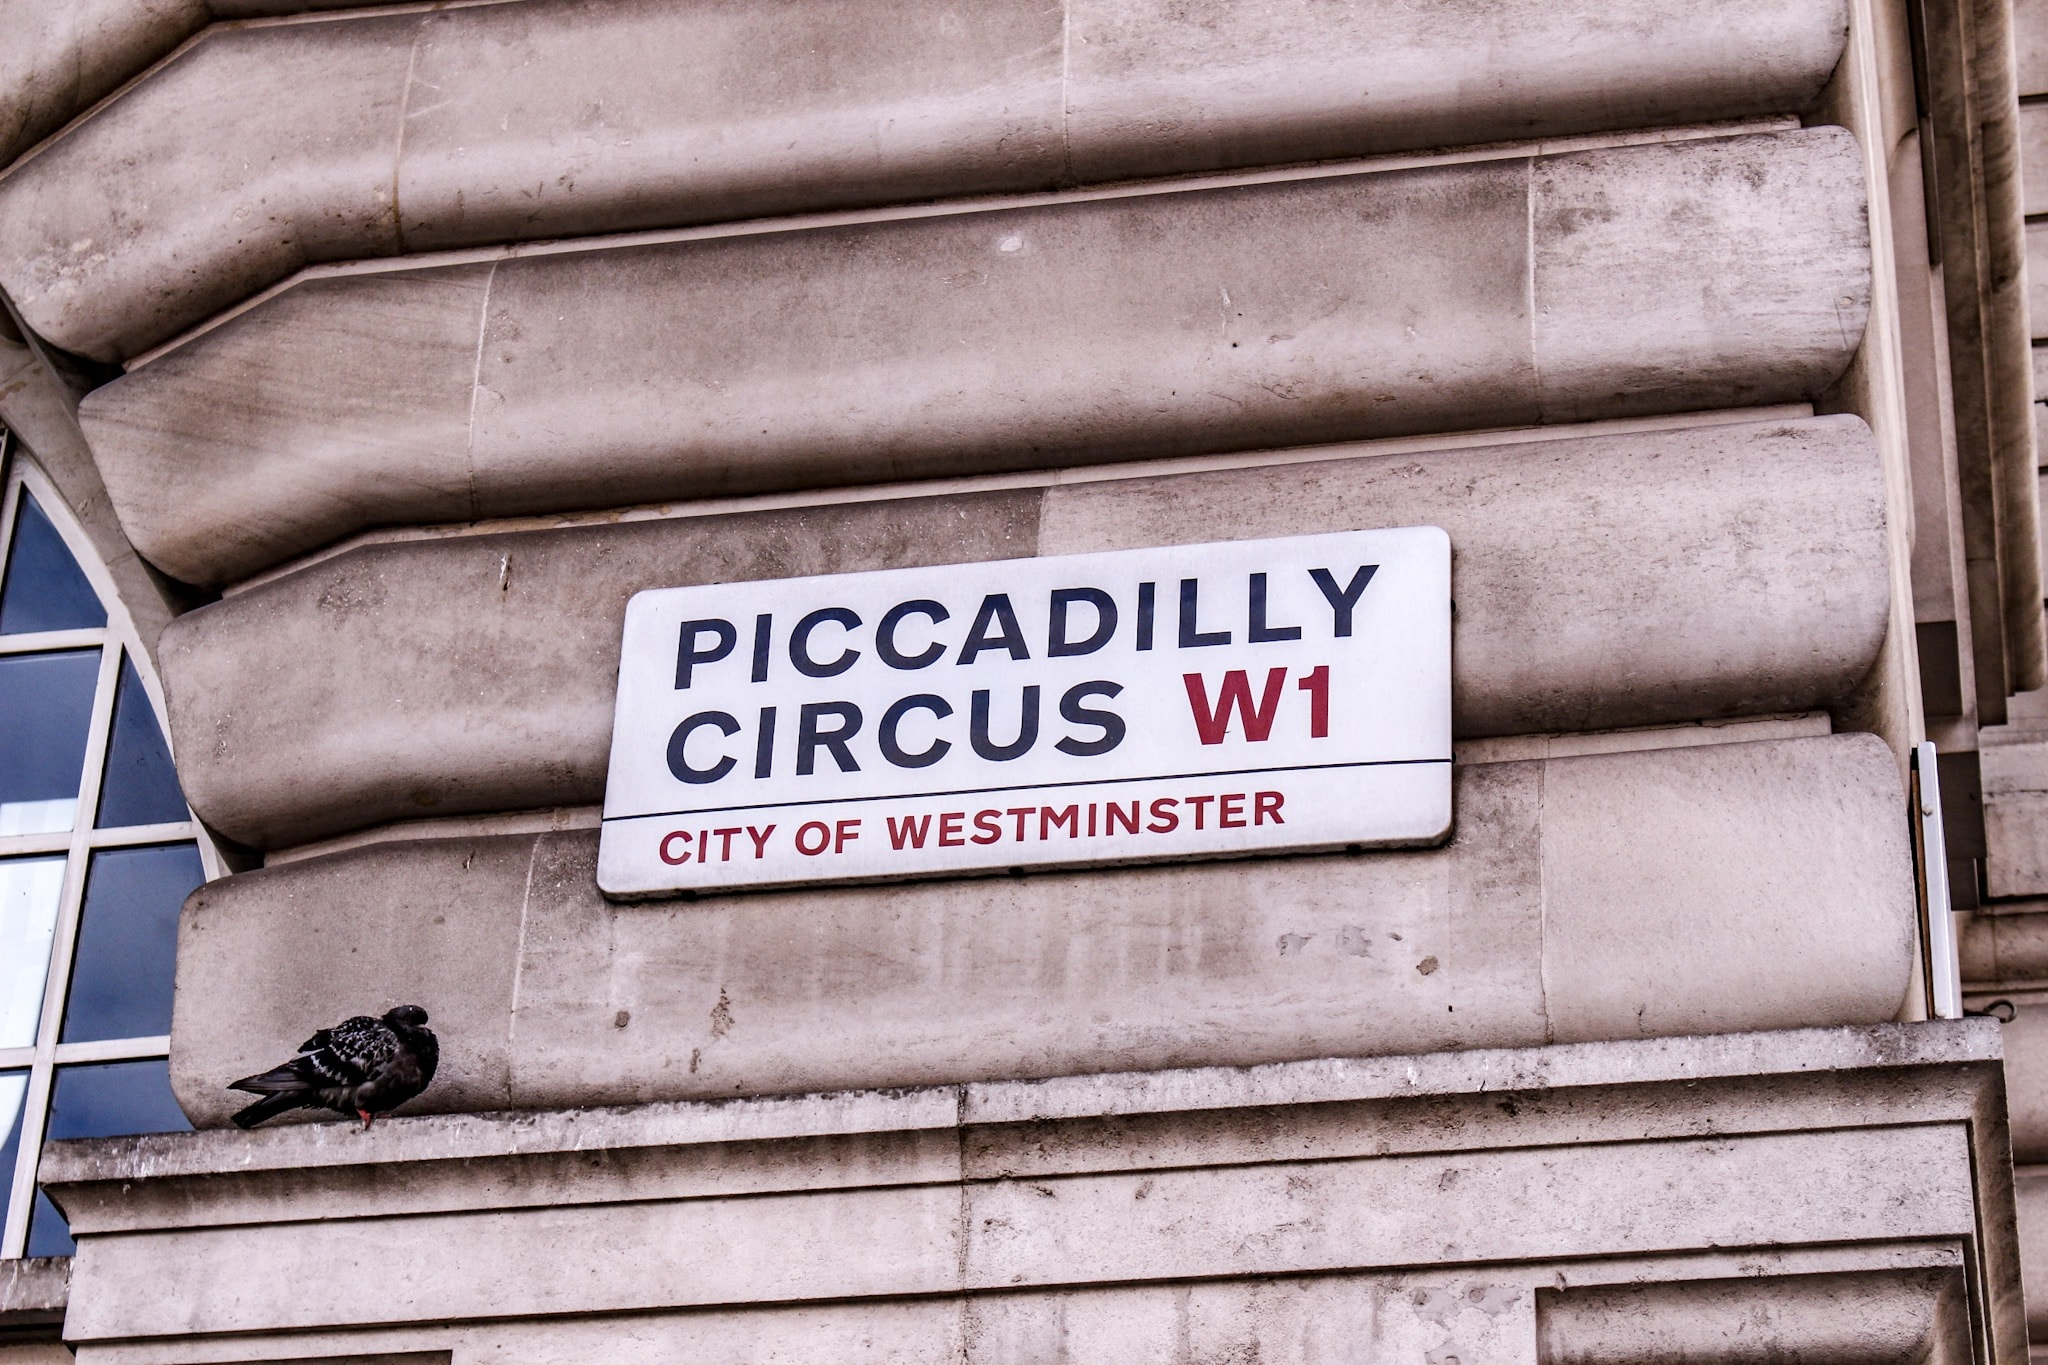 2 Tage in London - Piccadilly Circus